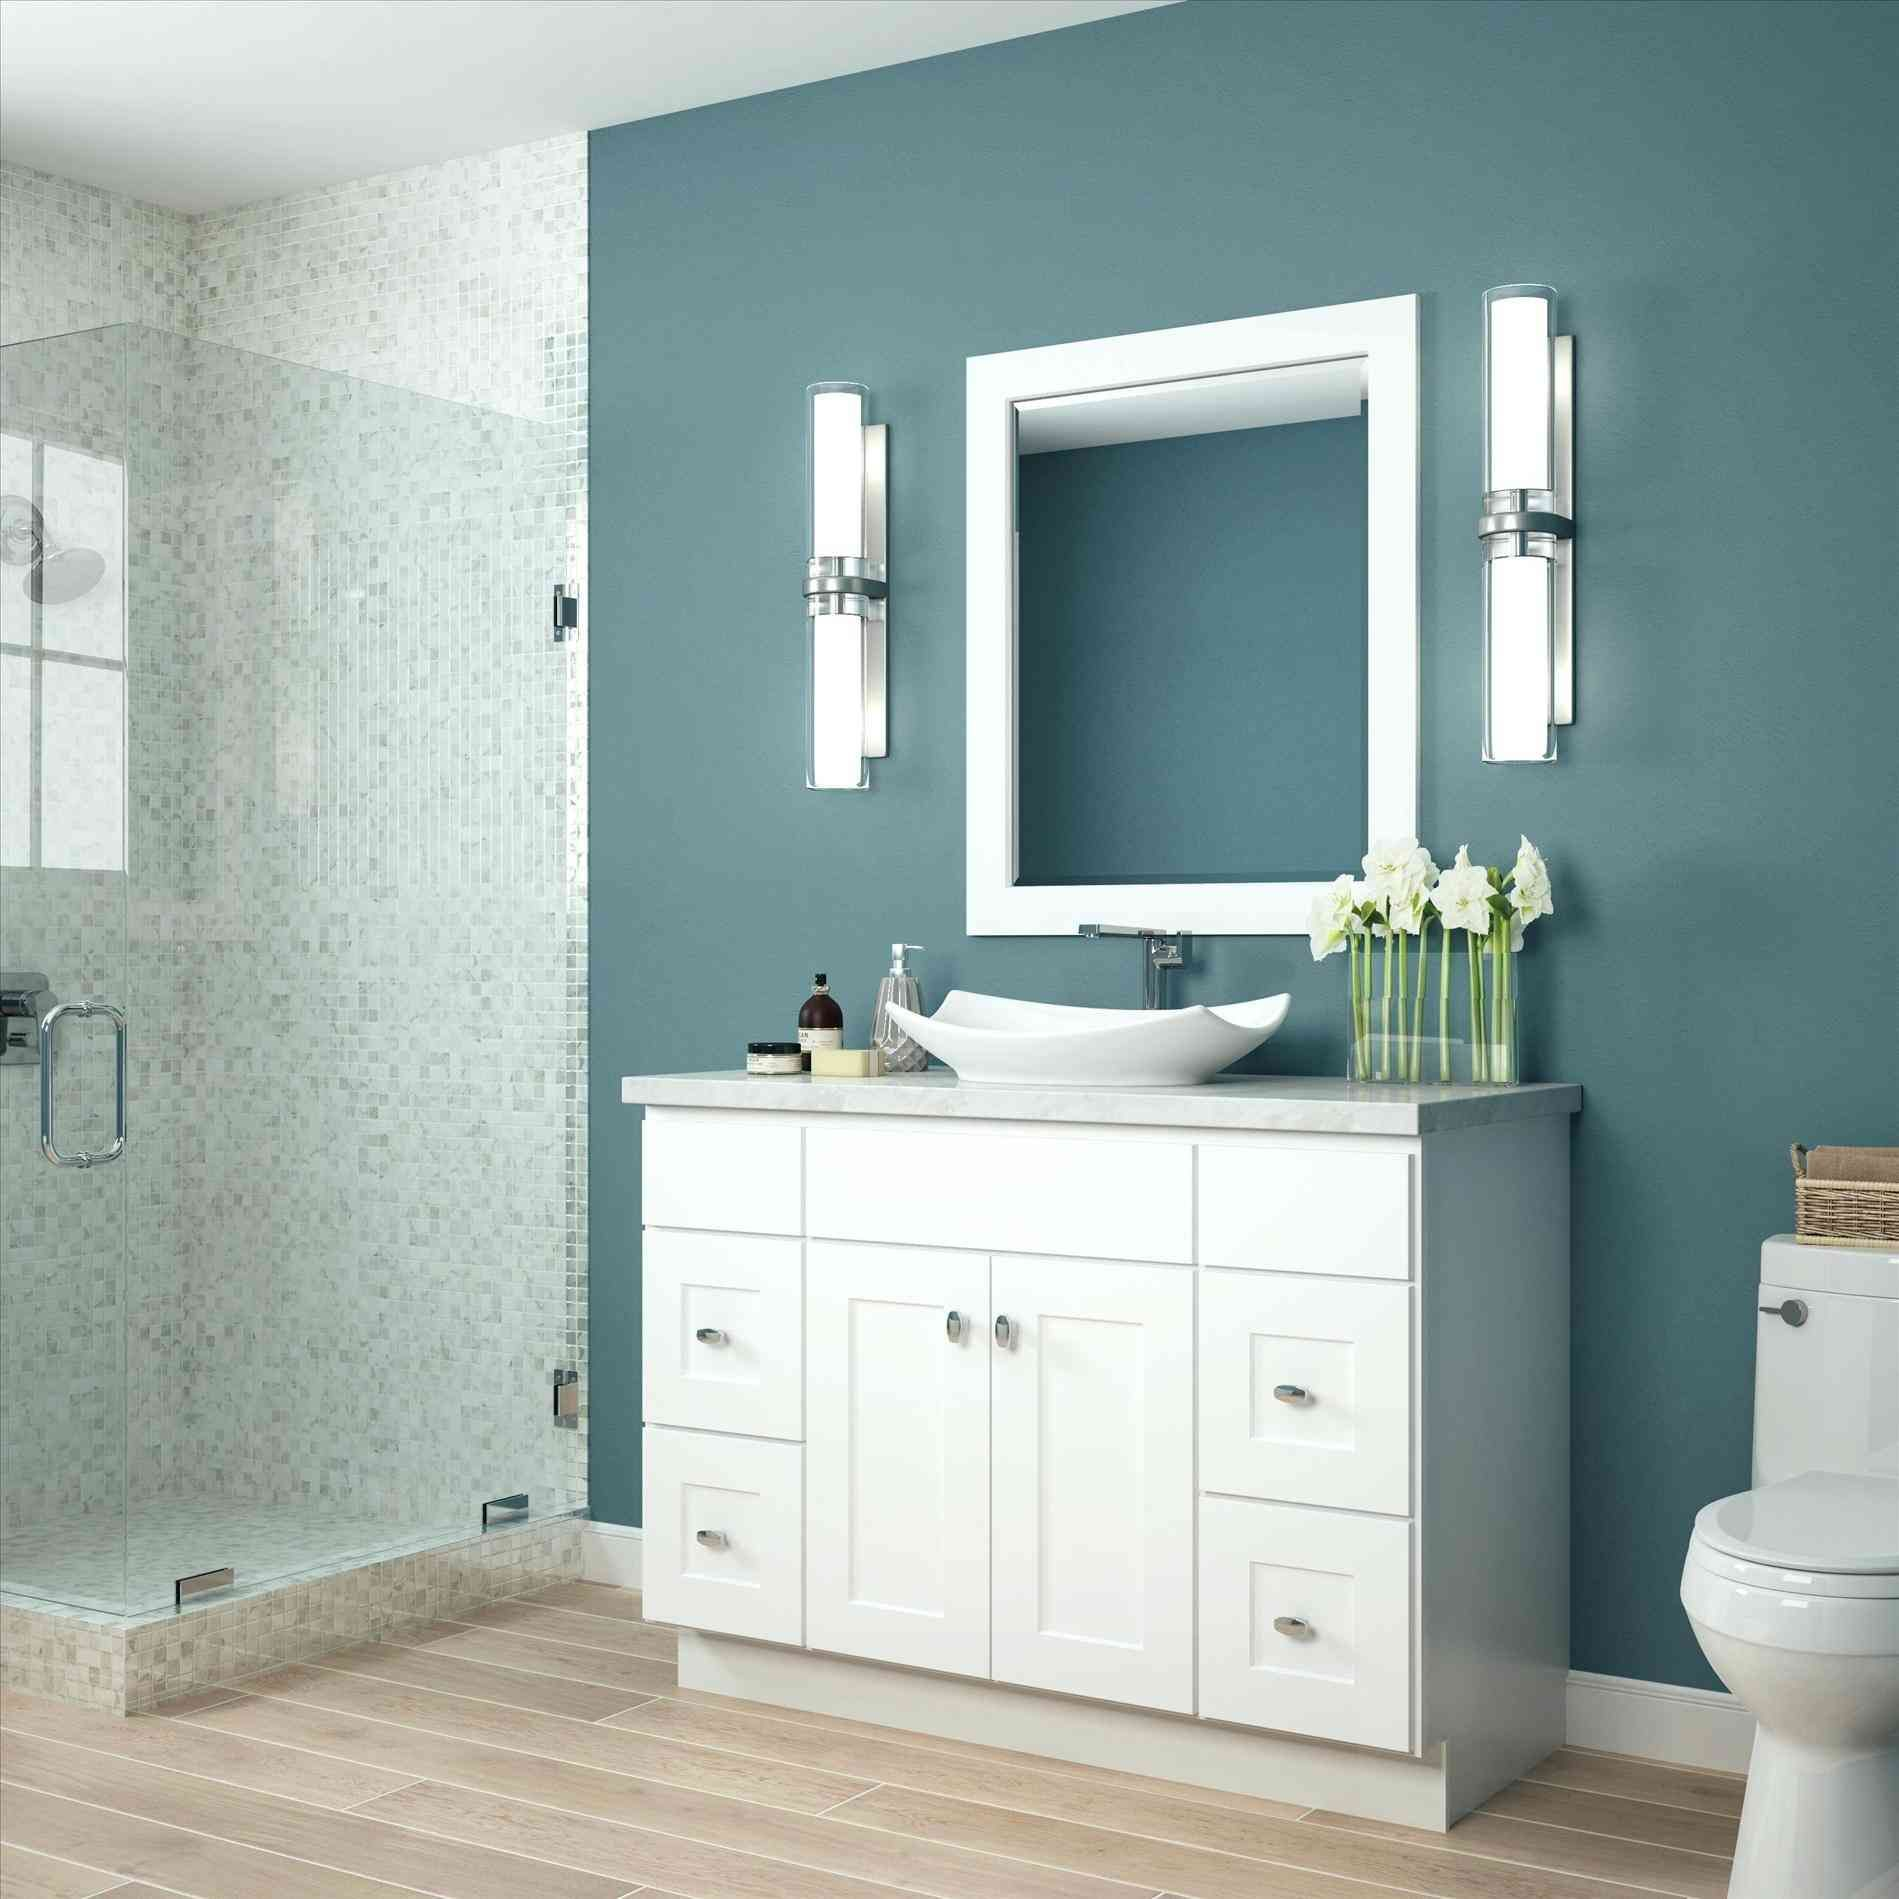 New Post Bathroom Vanities Tampa Bay Area BathroomIdeas - Bathroom vanities tampa bay area